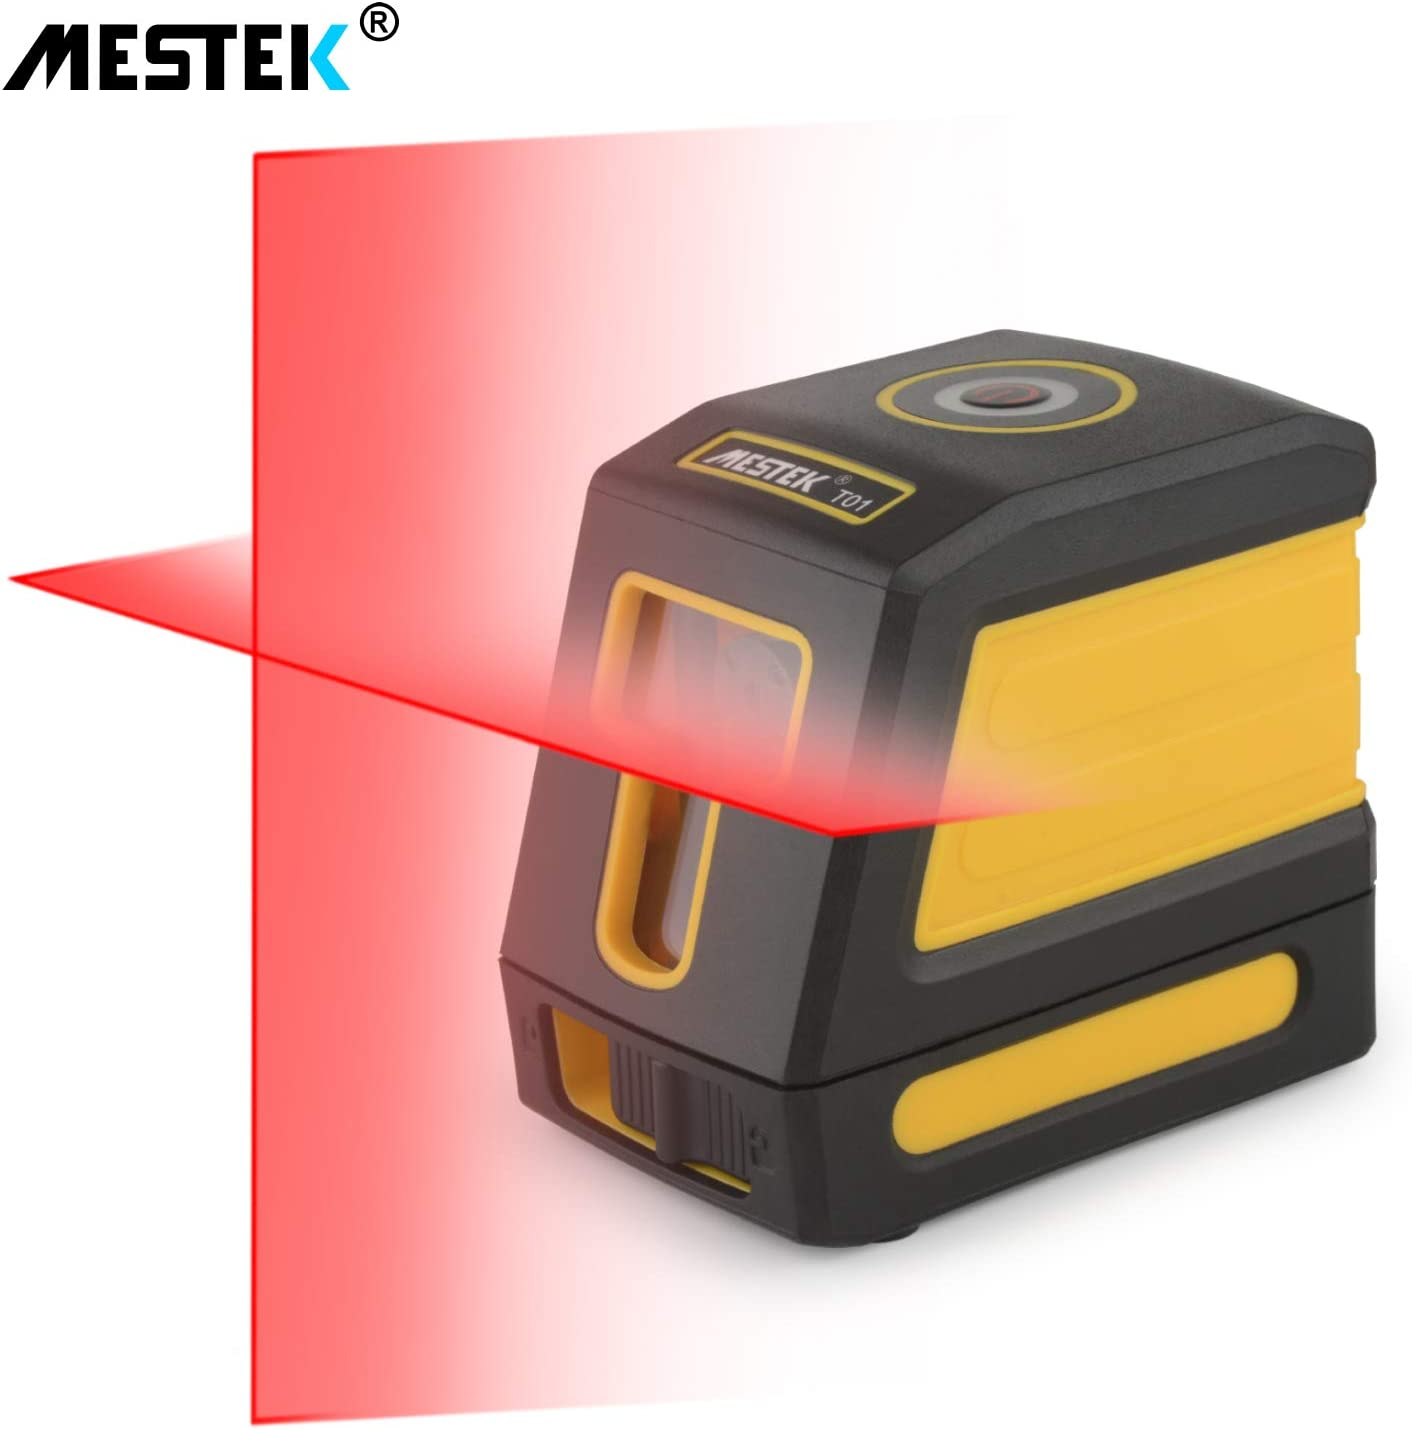 Laser Level Self Leveling MESTEK Line Level 50 Feet Alignment Tools Cross Vertical Horizontal Lines Full Soft Rubber Covered Carrying Pouch Batteries Mount Base for Wall Ceiling Hanging Picture